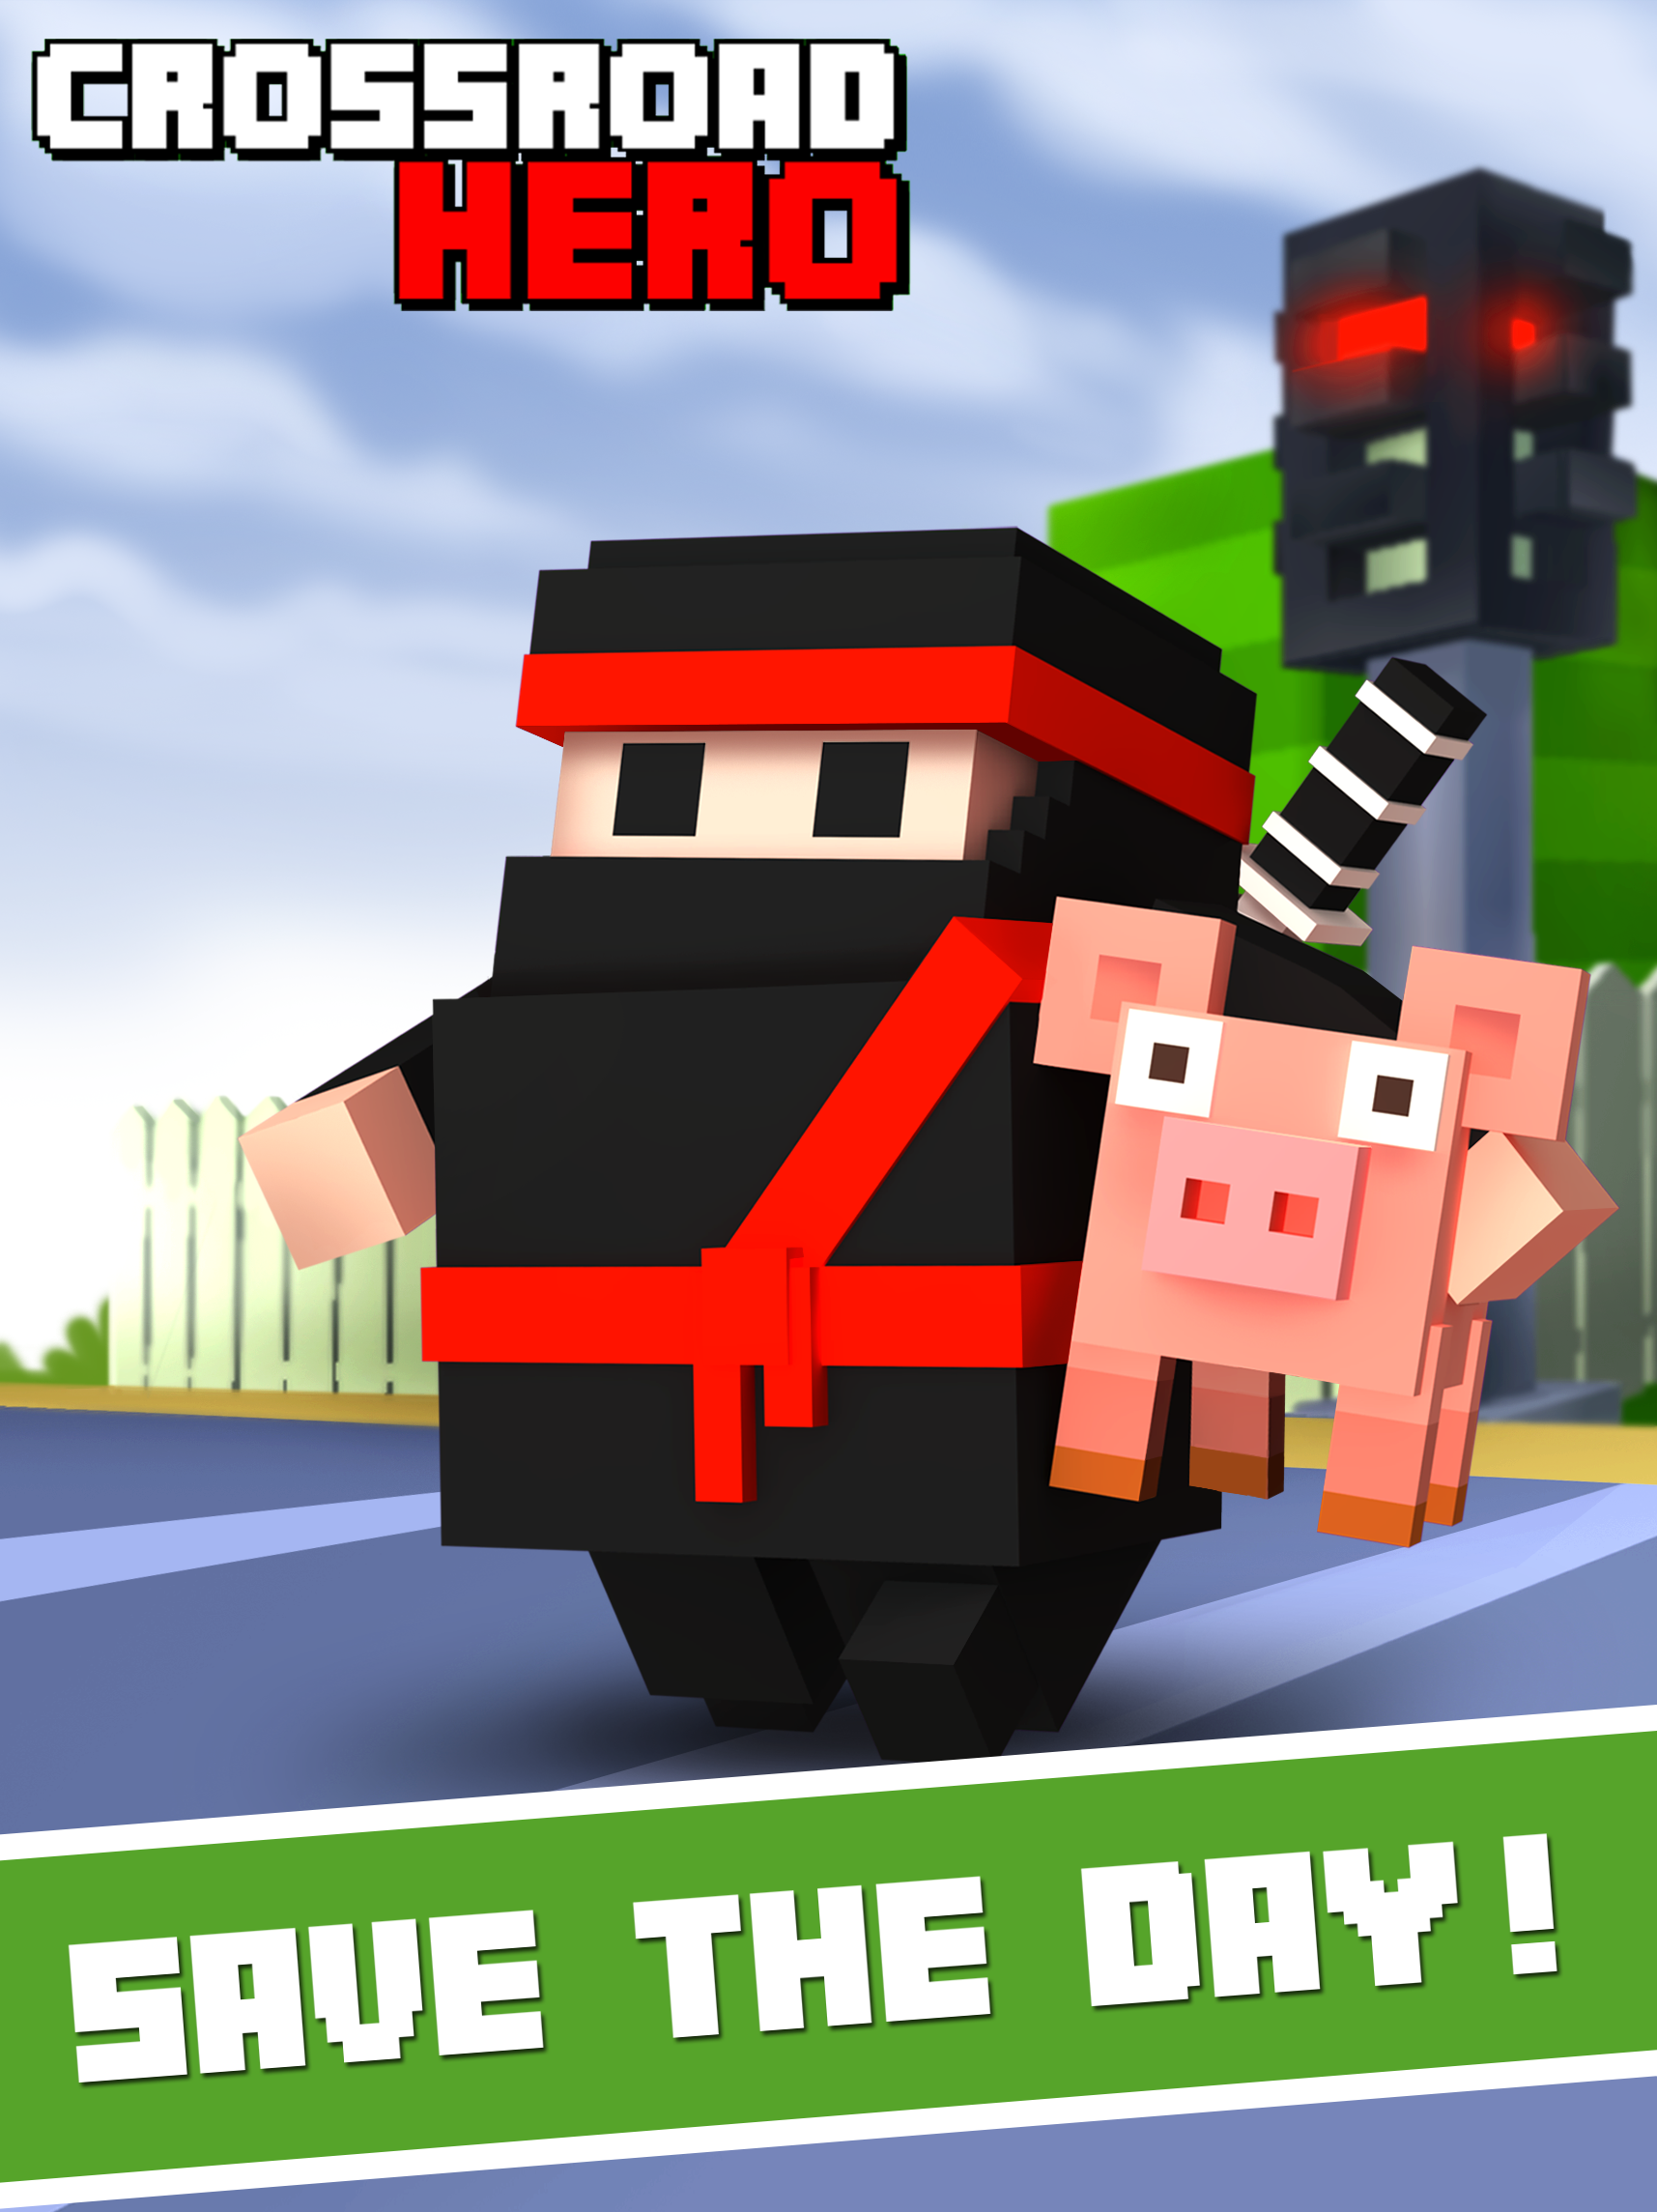 Crossy Road Hero